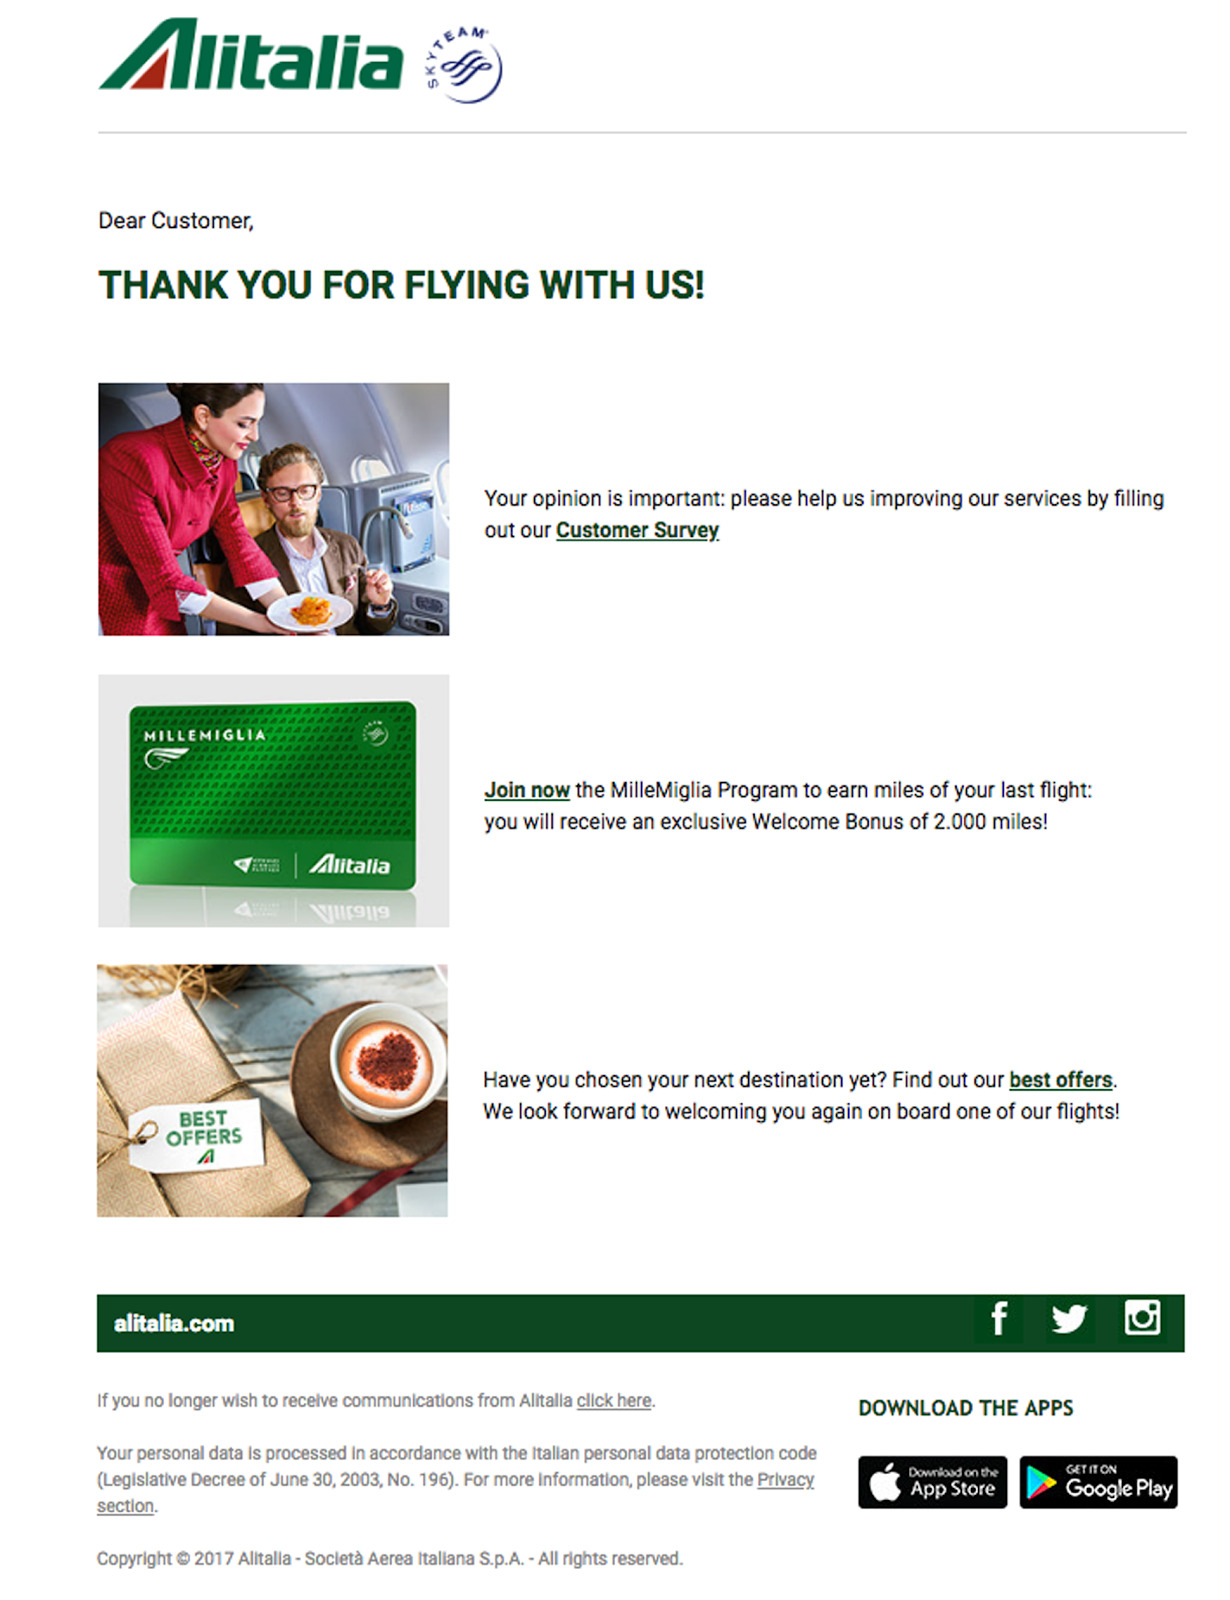 Alitalia thank you notes for customers for booking, flying, choosing us